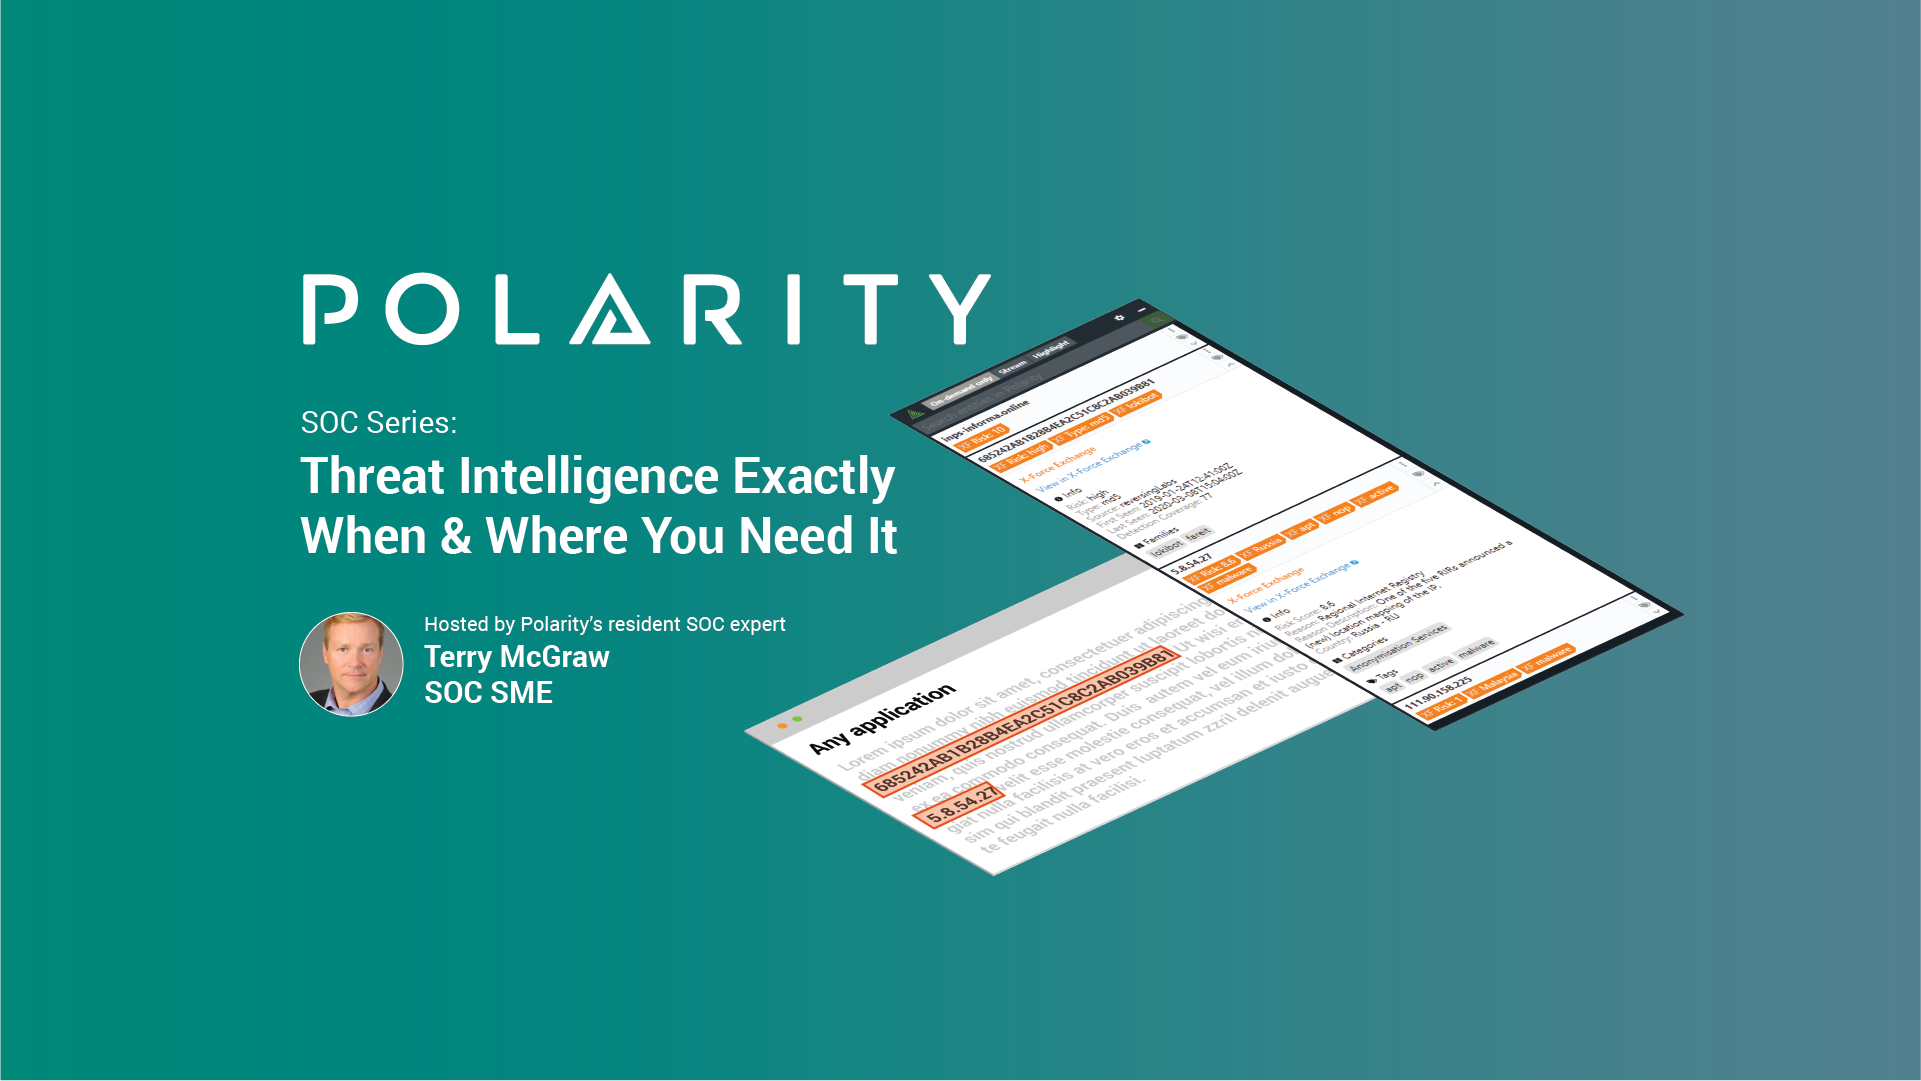 SOC Series: Threat Intelligence Exactly When & Where You Need It cover image